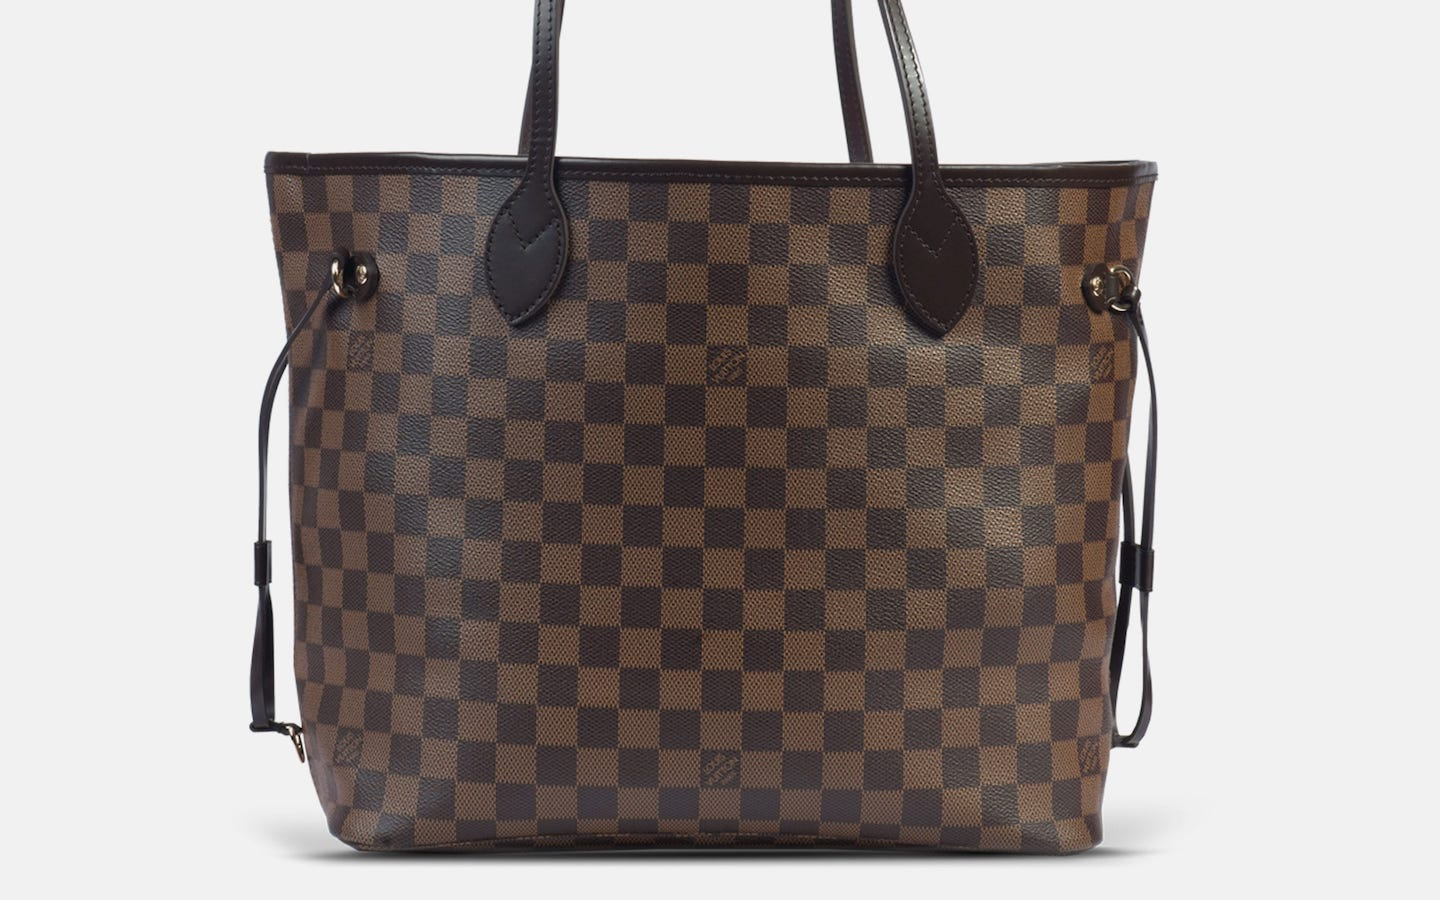 lv-neverfull-close-up-new-min-min